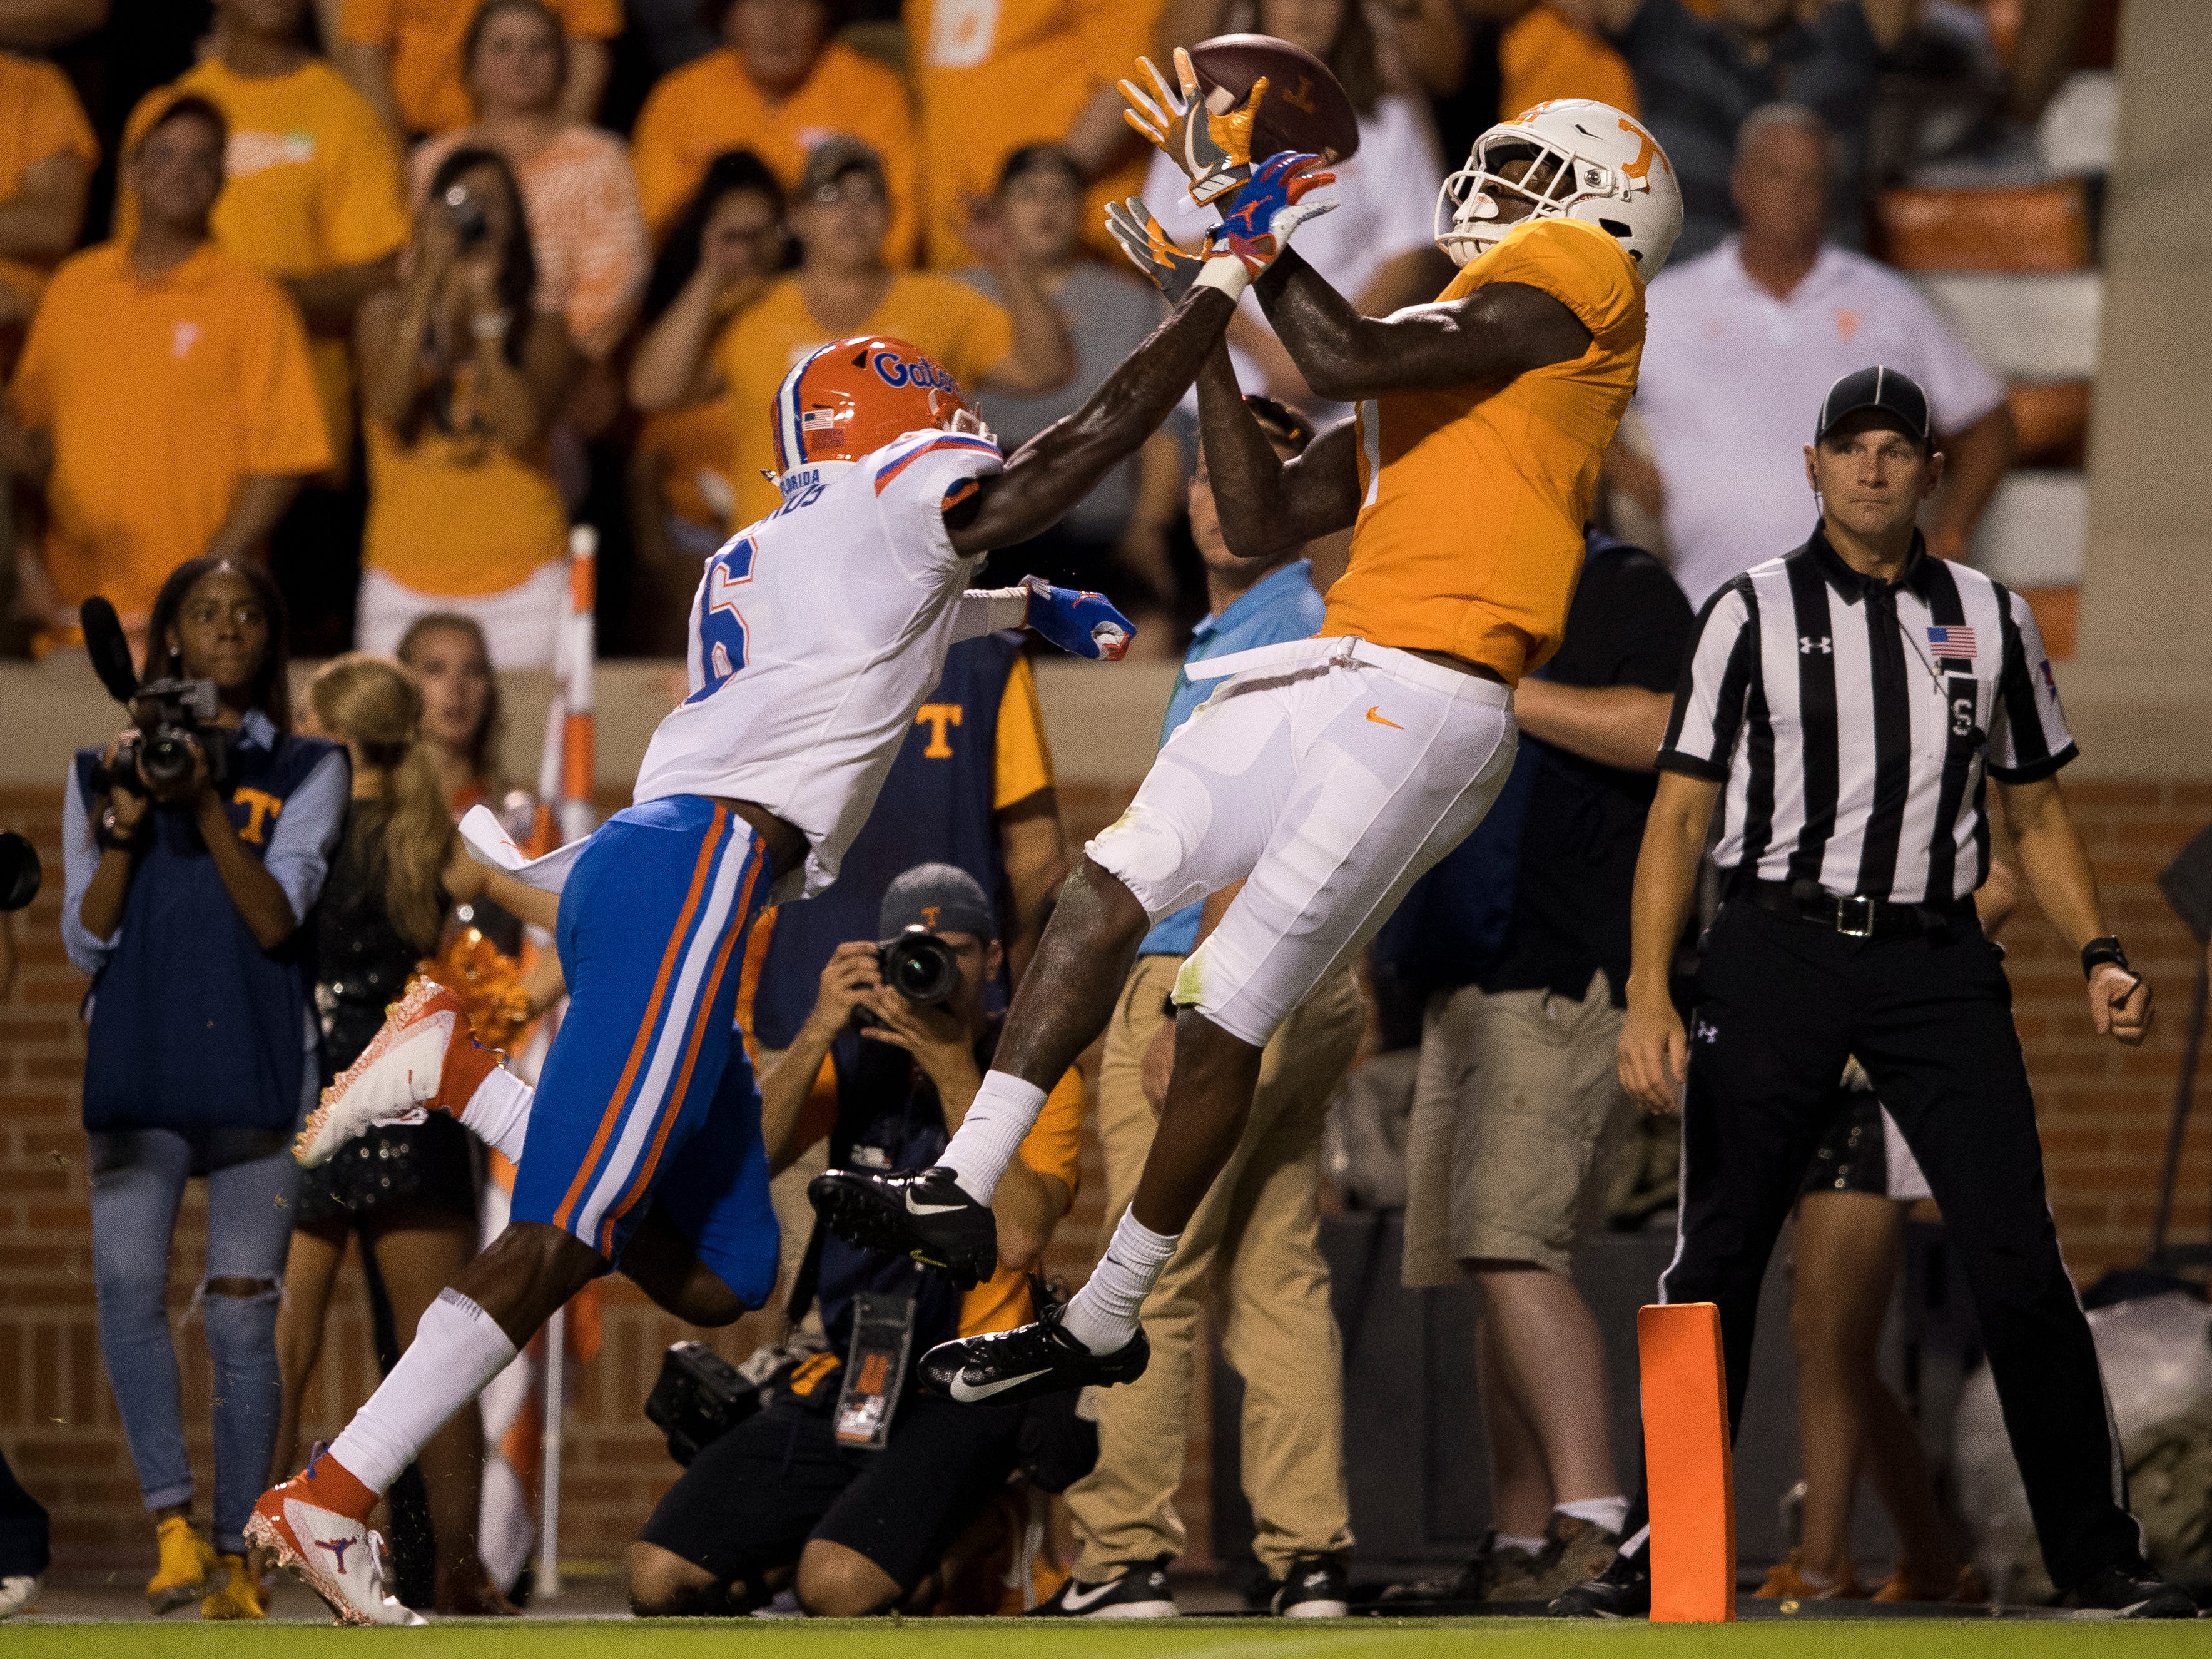 Tennessee wide receiver Marquez Callaway (1) fails to make a catch at the pylon during the Tennessee Volunteers' game against Florida in Neyland Stadium on Saturday, Sept. 22, 2018.